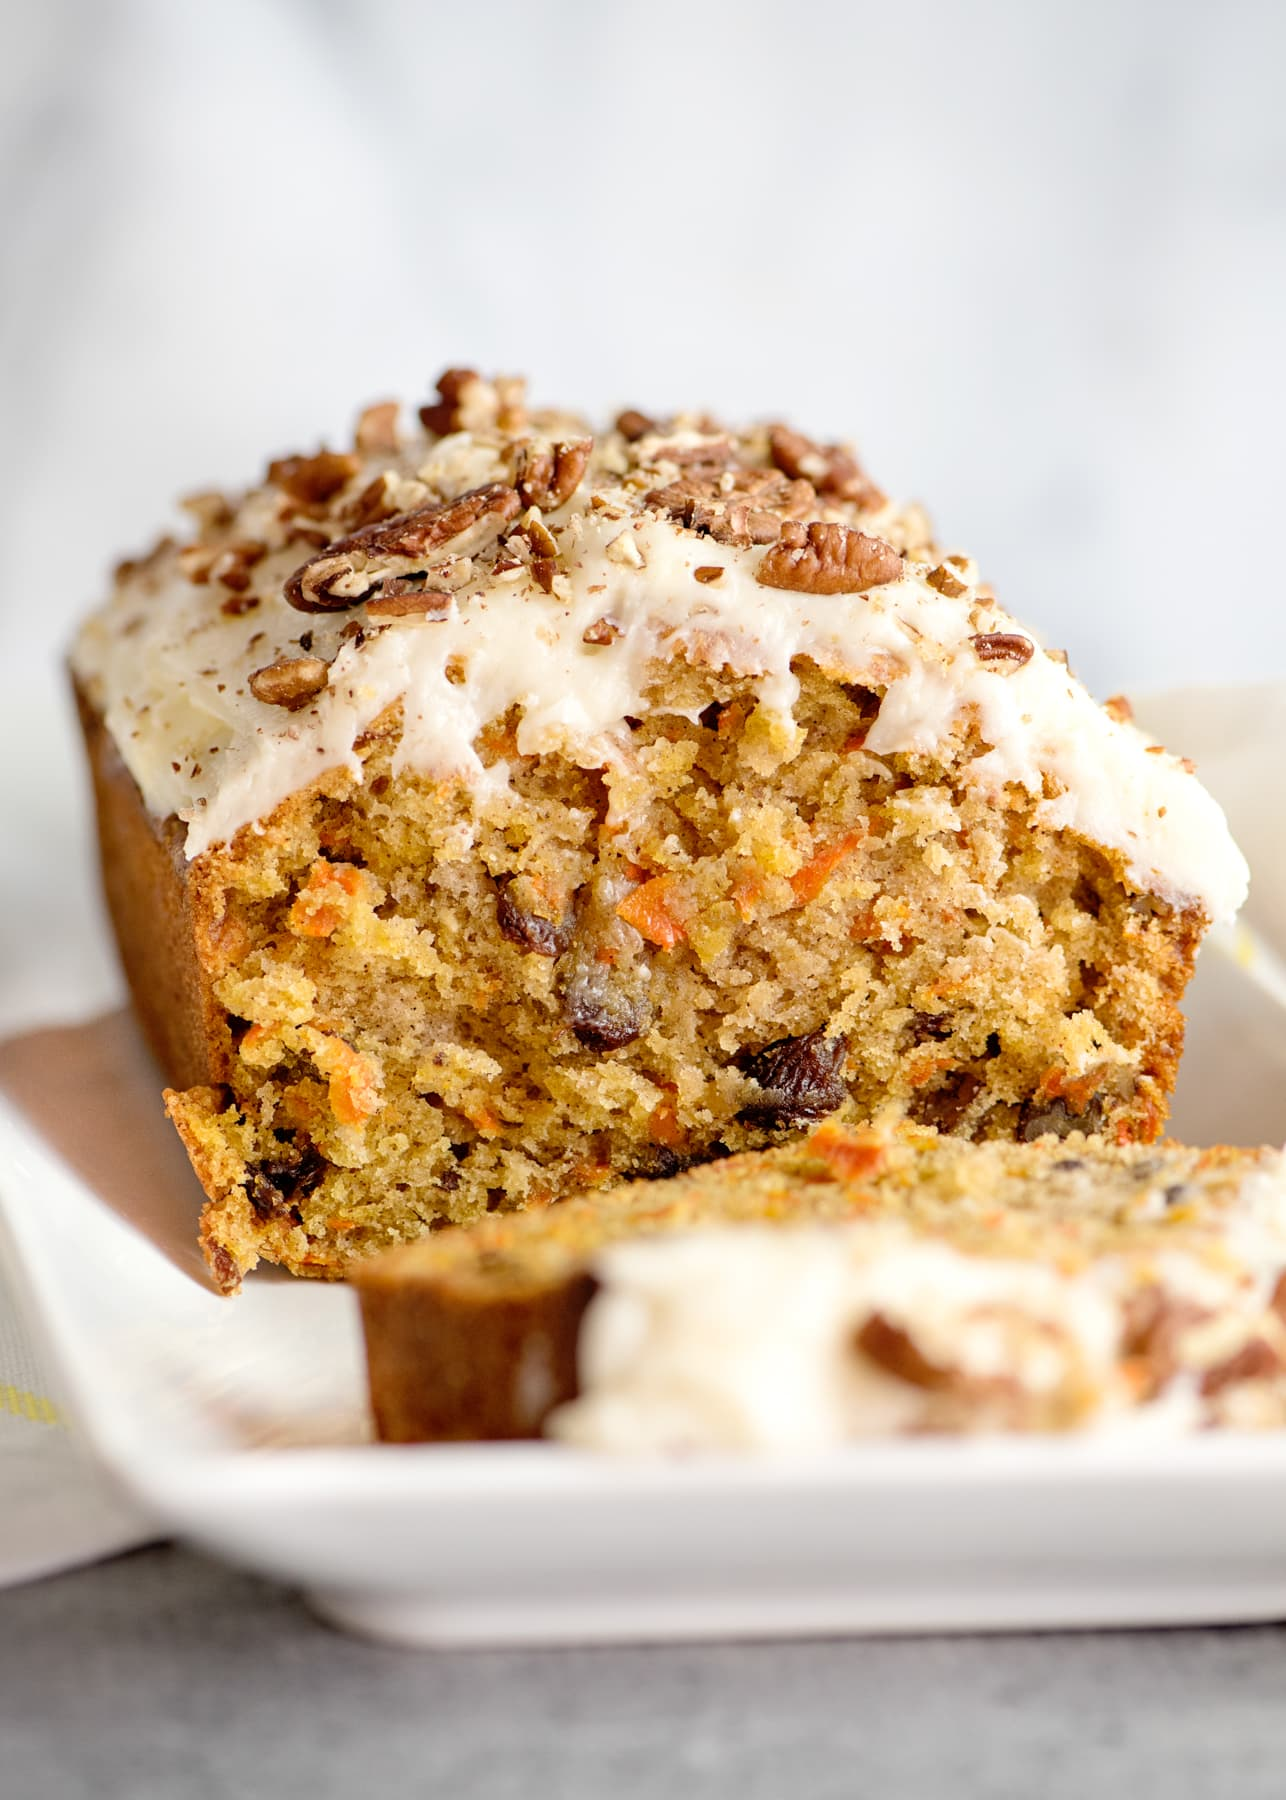 Carrot cake loaf with cream cheese frosting, topped with crushed pecans.